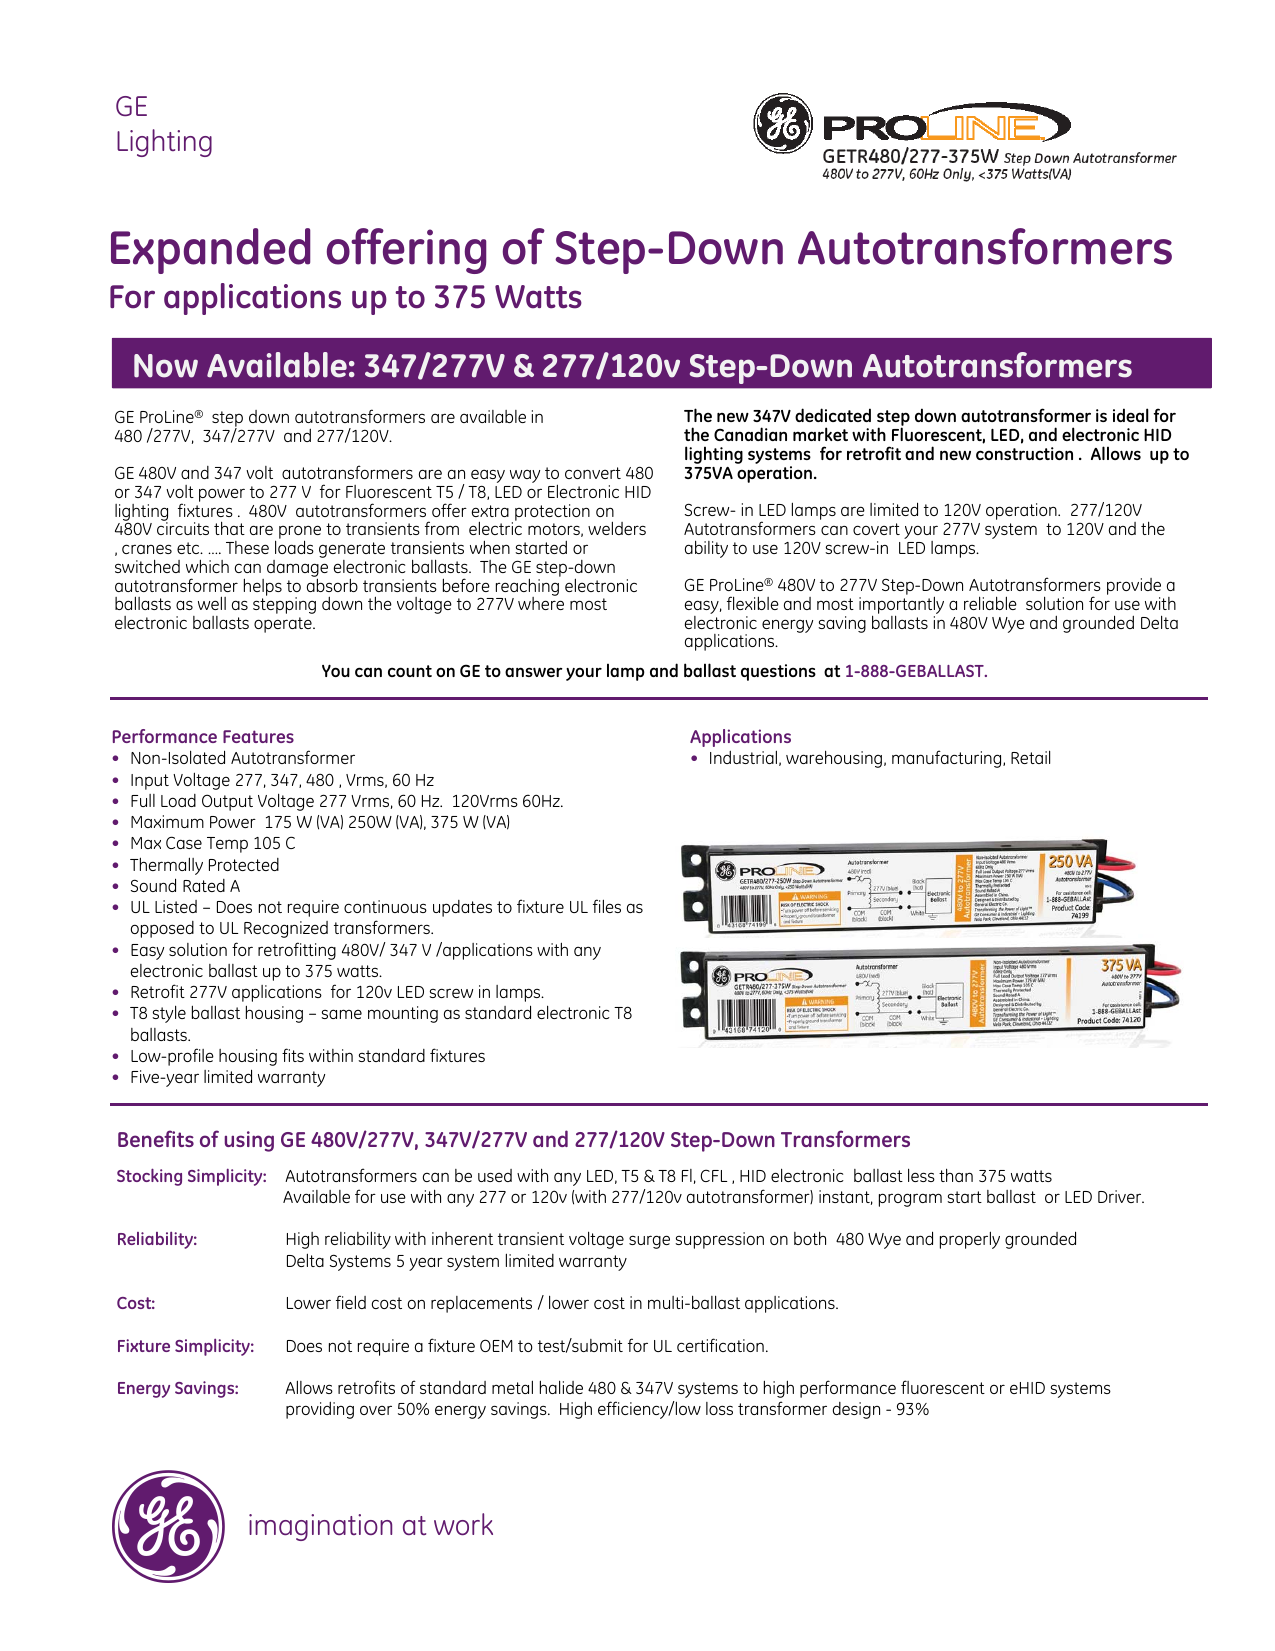 Expanded offering of Step-Down Autotransformers on